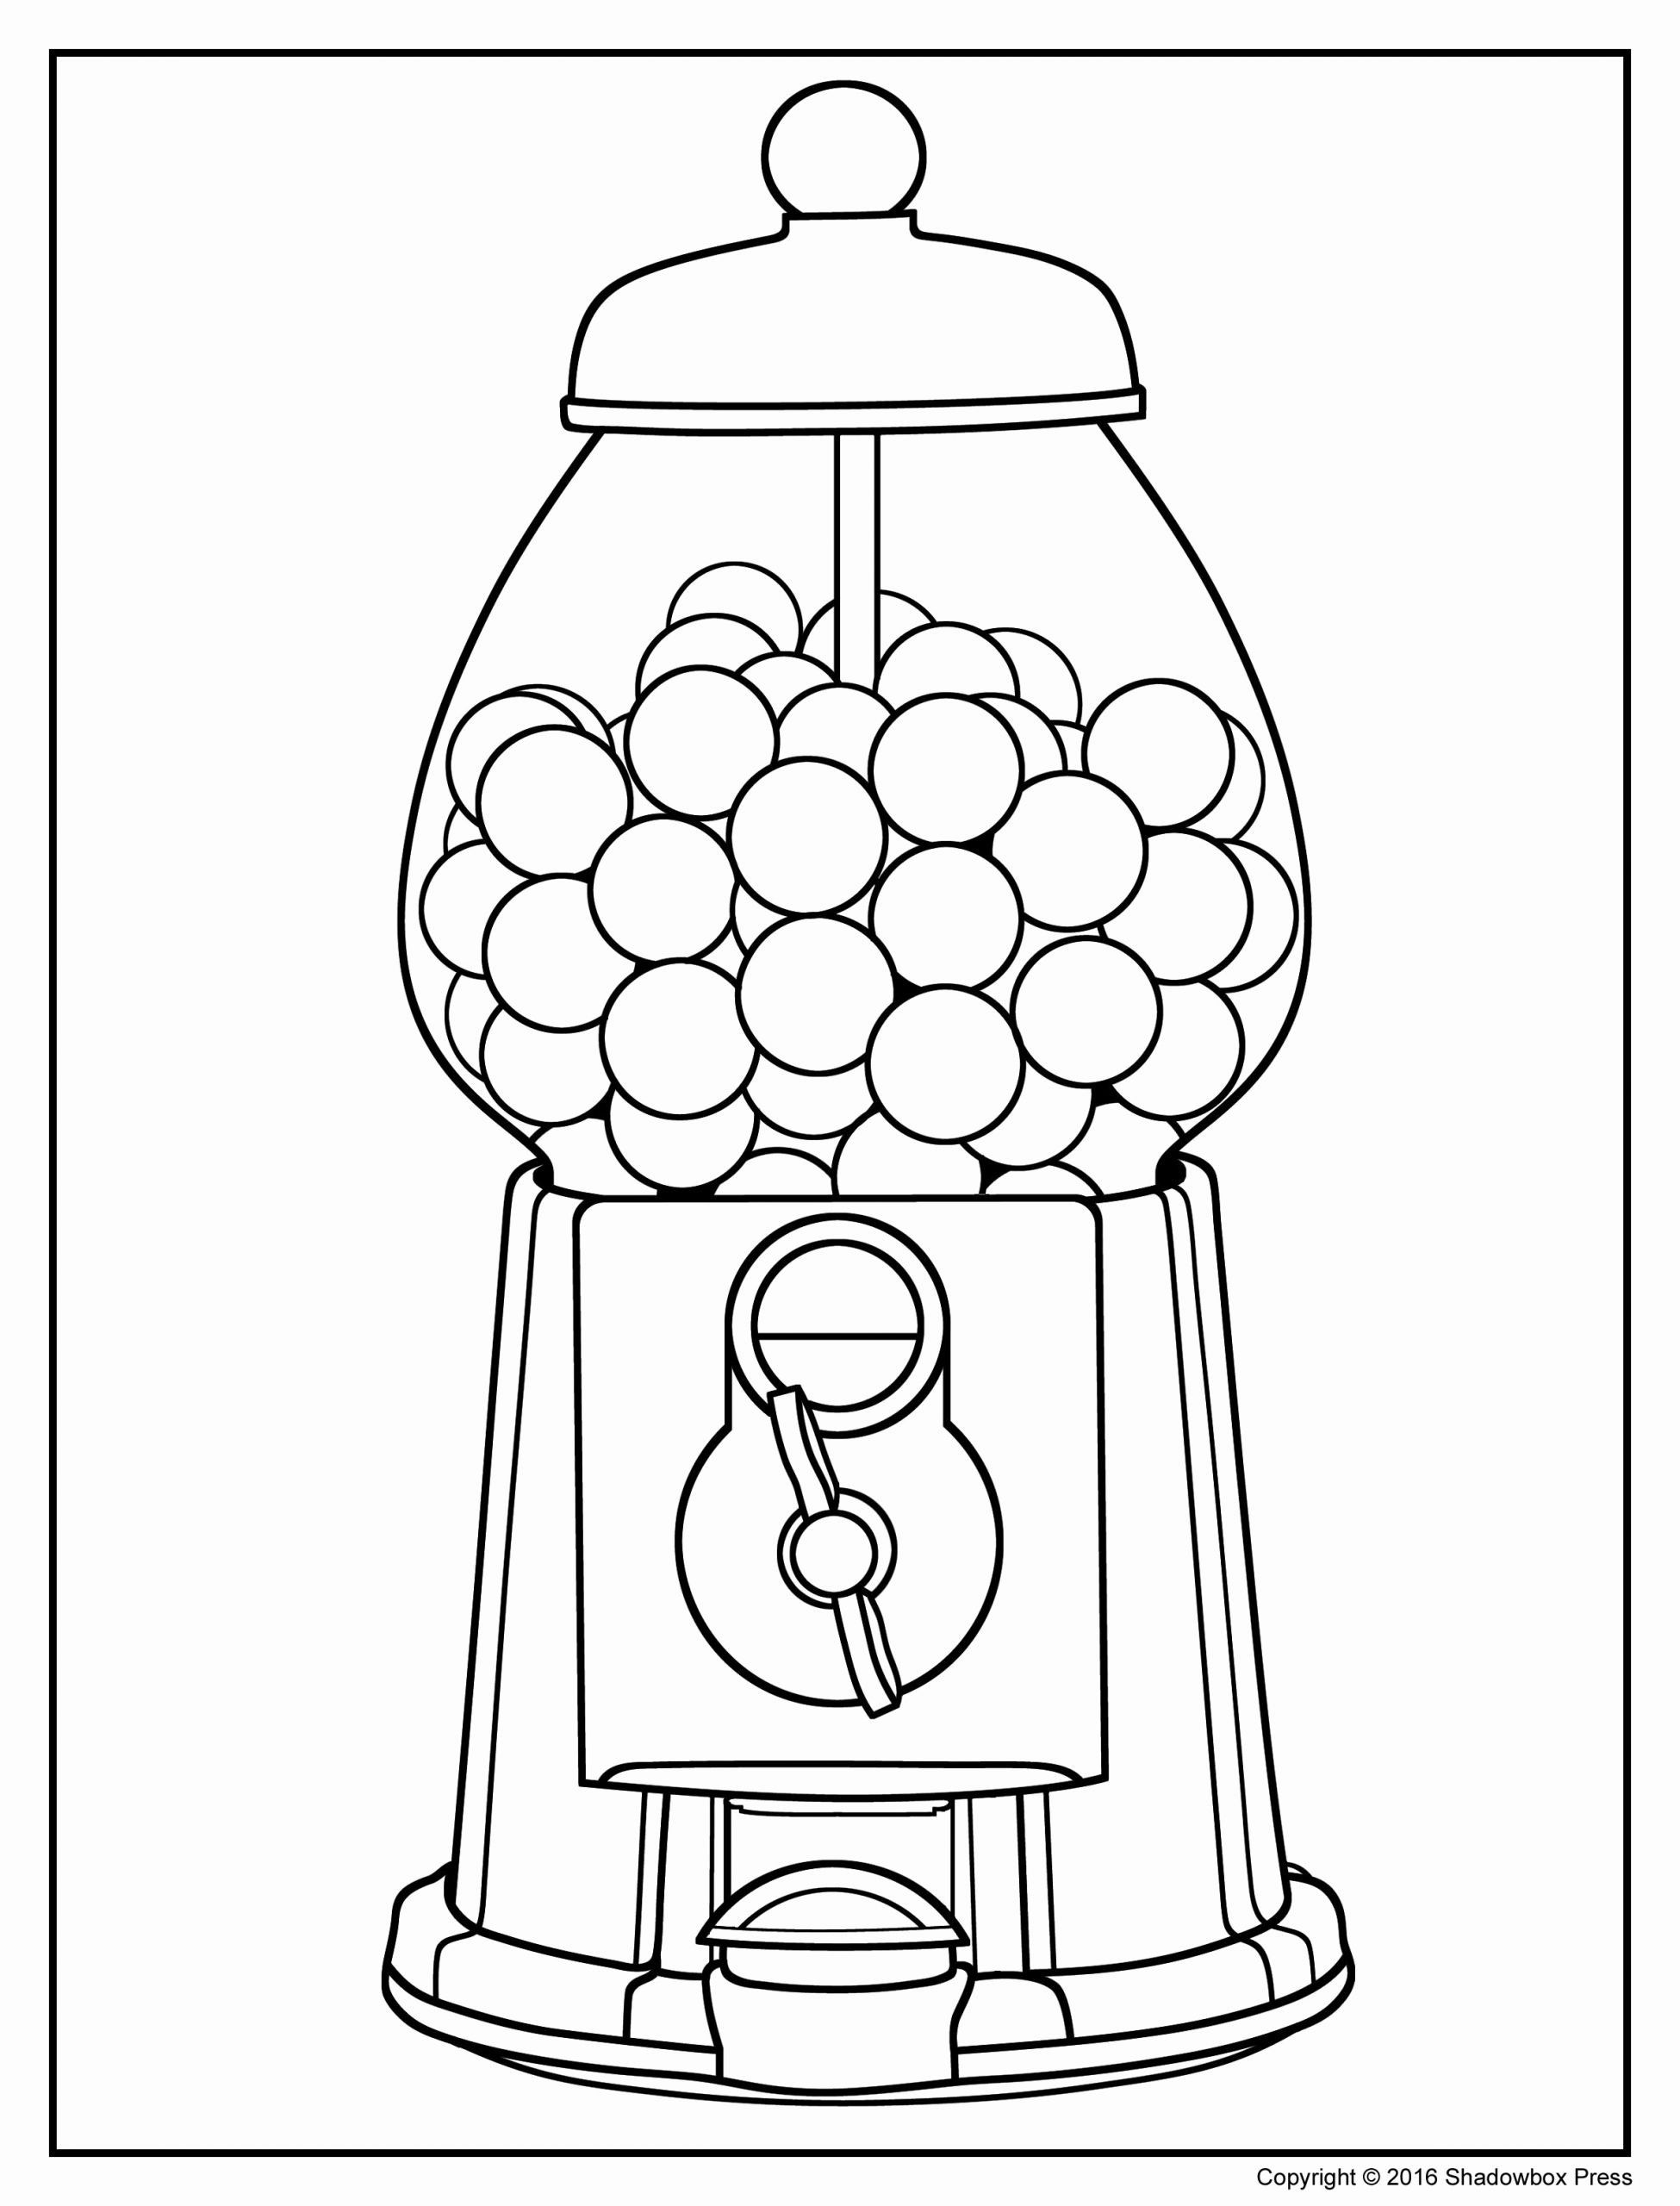 Easy Coloring Pages For Seniors Elegant Free Downloadable Coloring Pages For Adults With Dementia In 2020 Cute Coloring Pages Easy Coloring Pages Coloring Pages